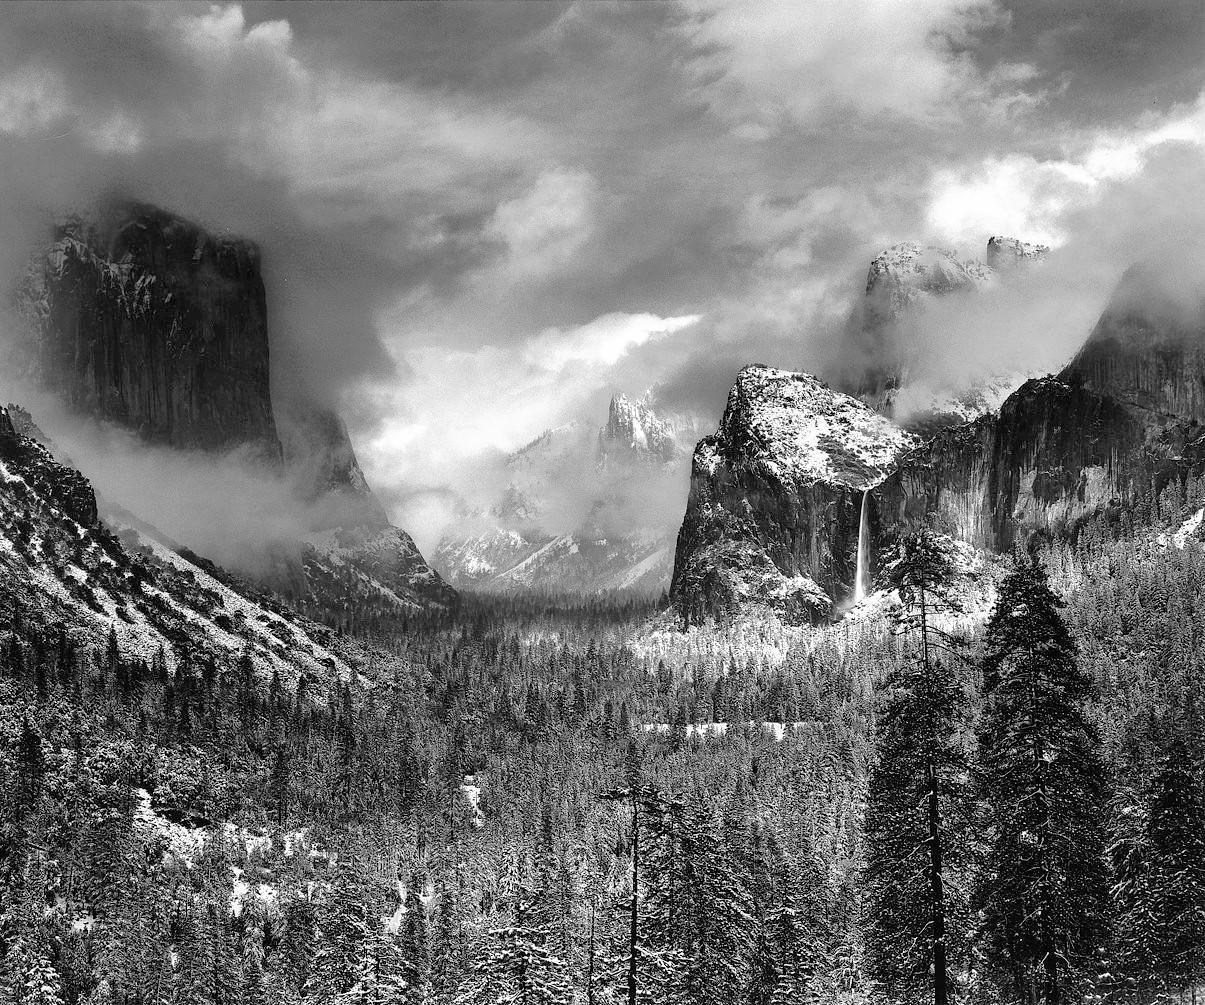 ansel yosemite adams essay His famous photographs of yosemite national park inspired him to work  we will write a cheap essay sample on the life of ansel adams specifically for you for.